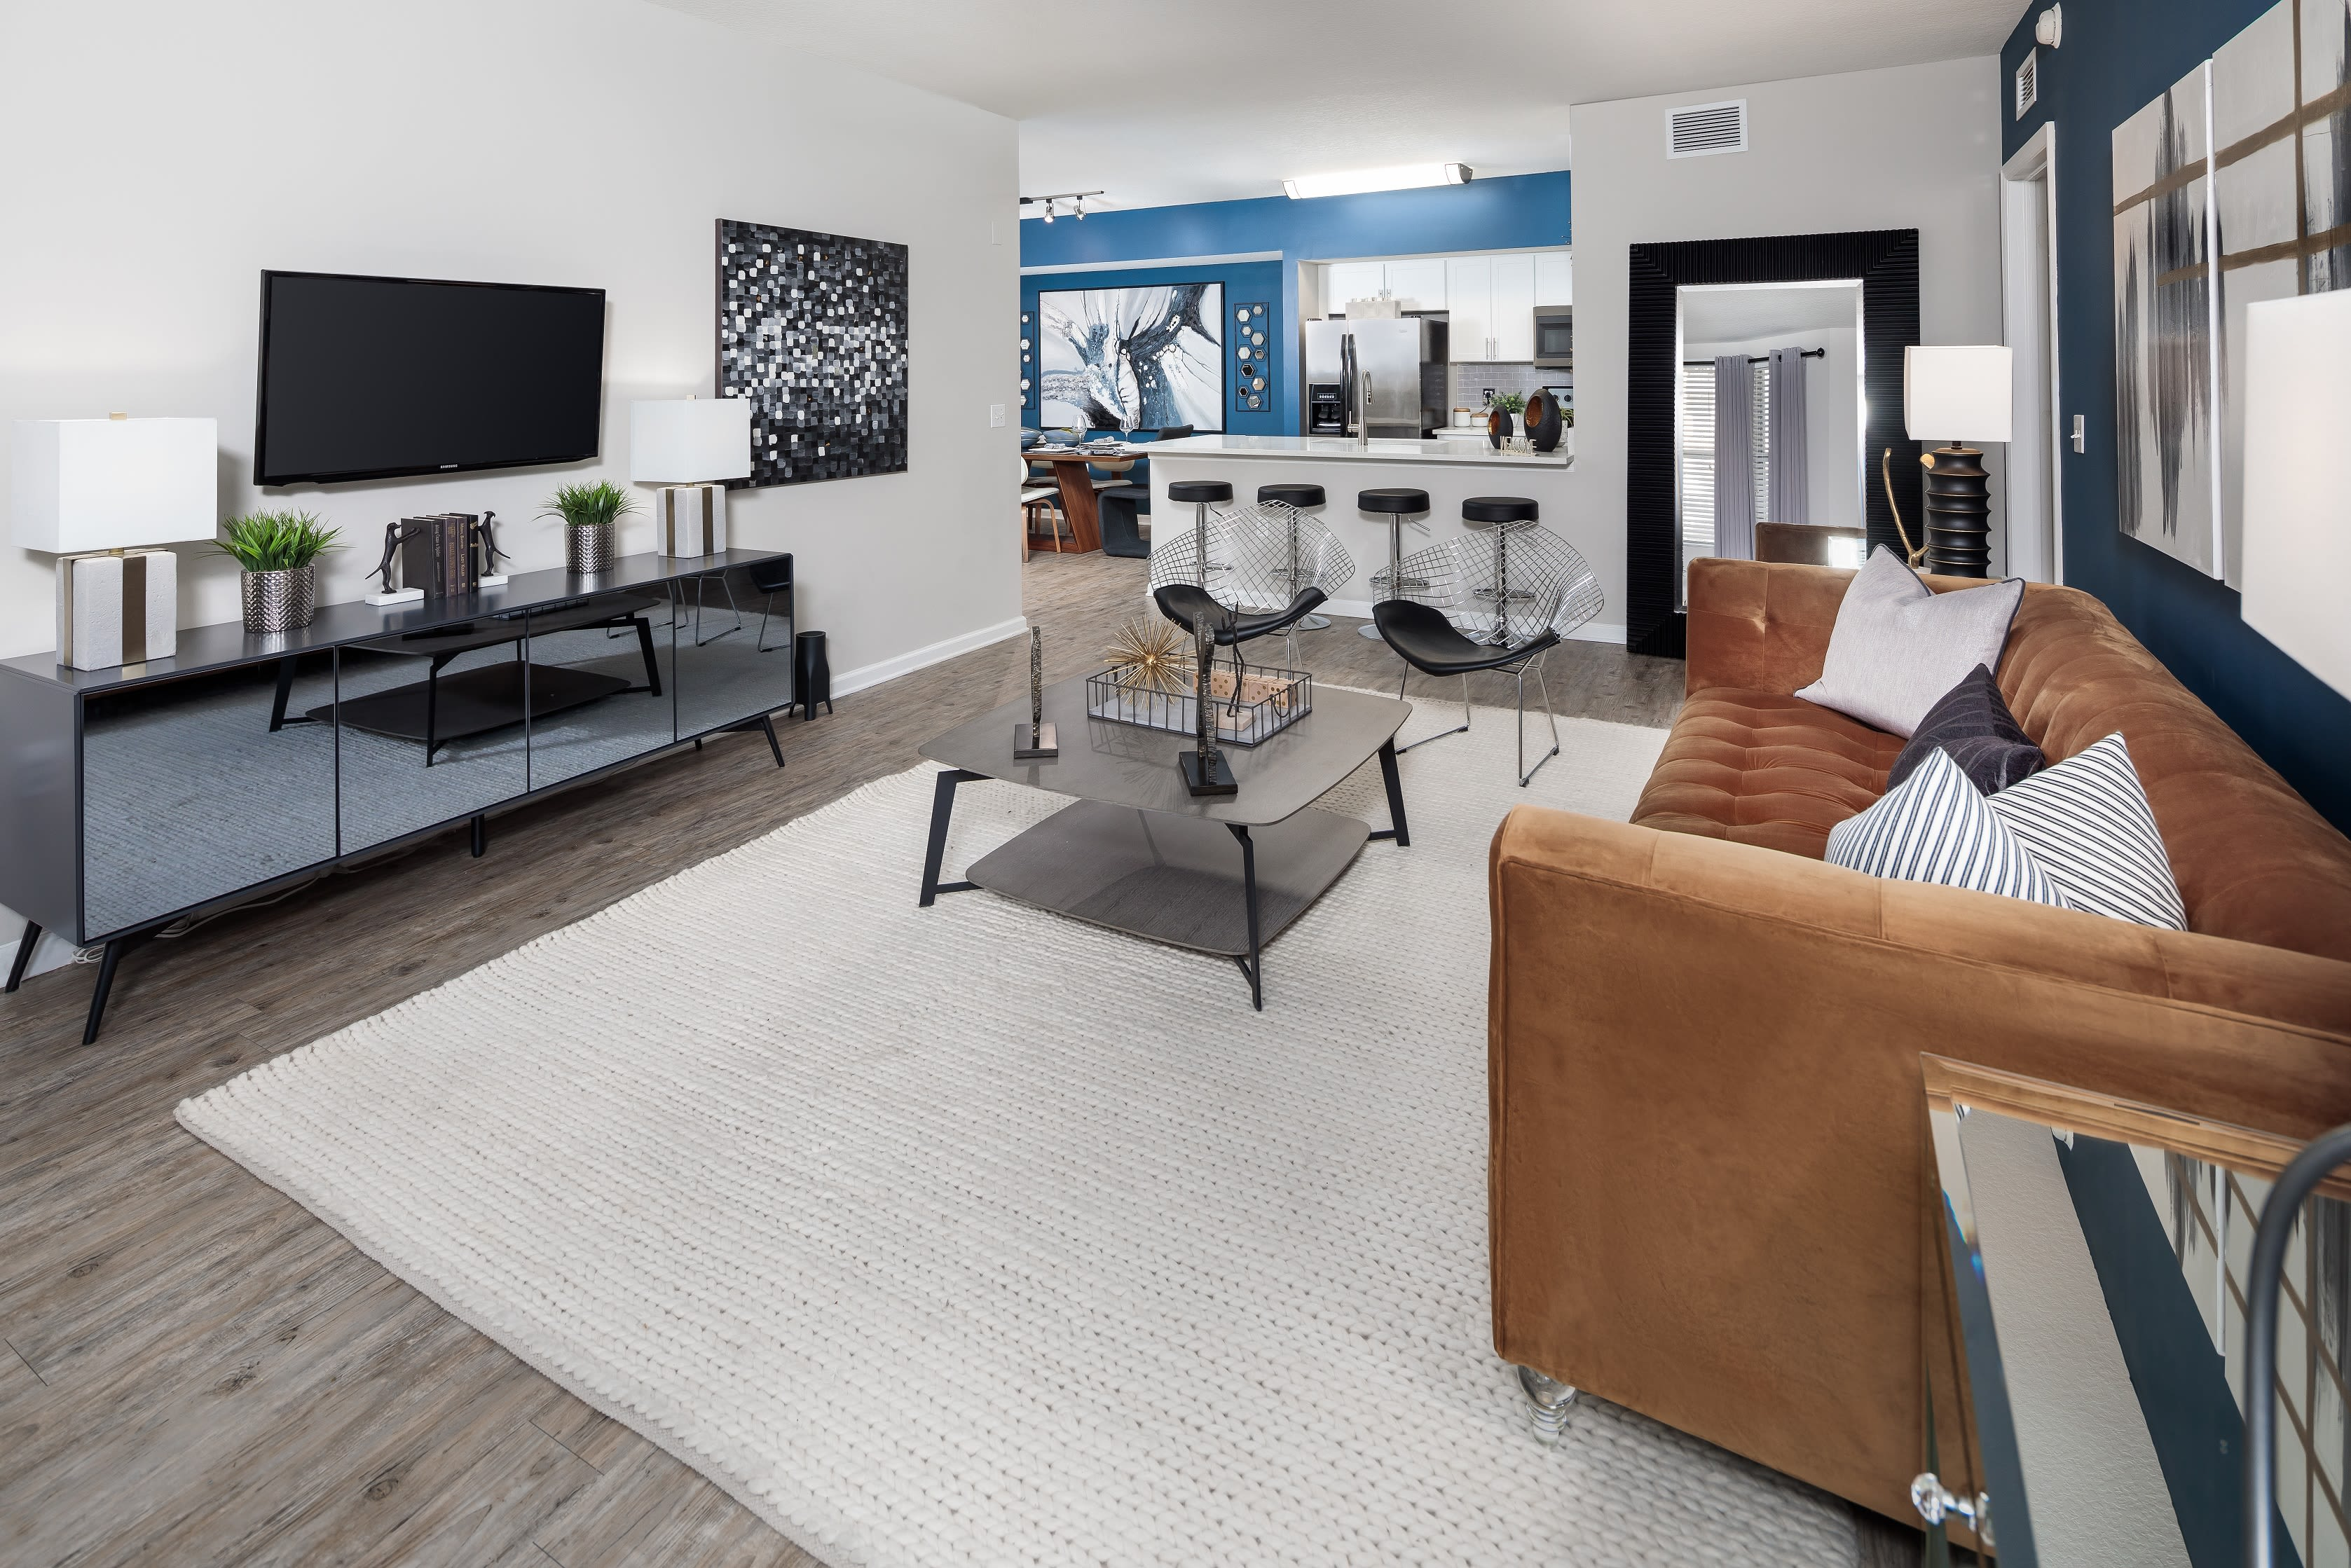 Spacious living area in decorated modern home with large windows for tons of light at The Pearl in Ft Lauderdale, Florida